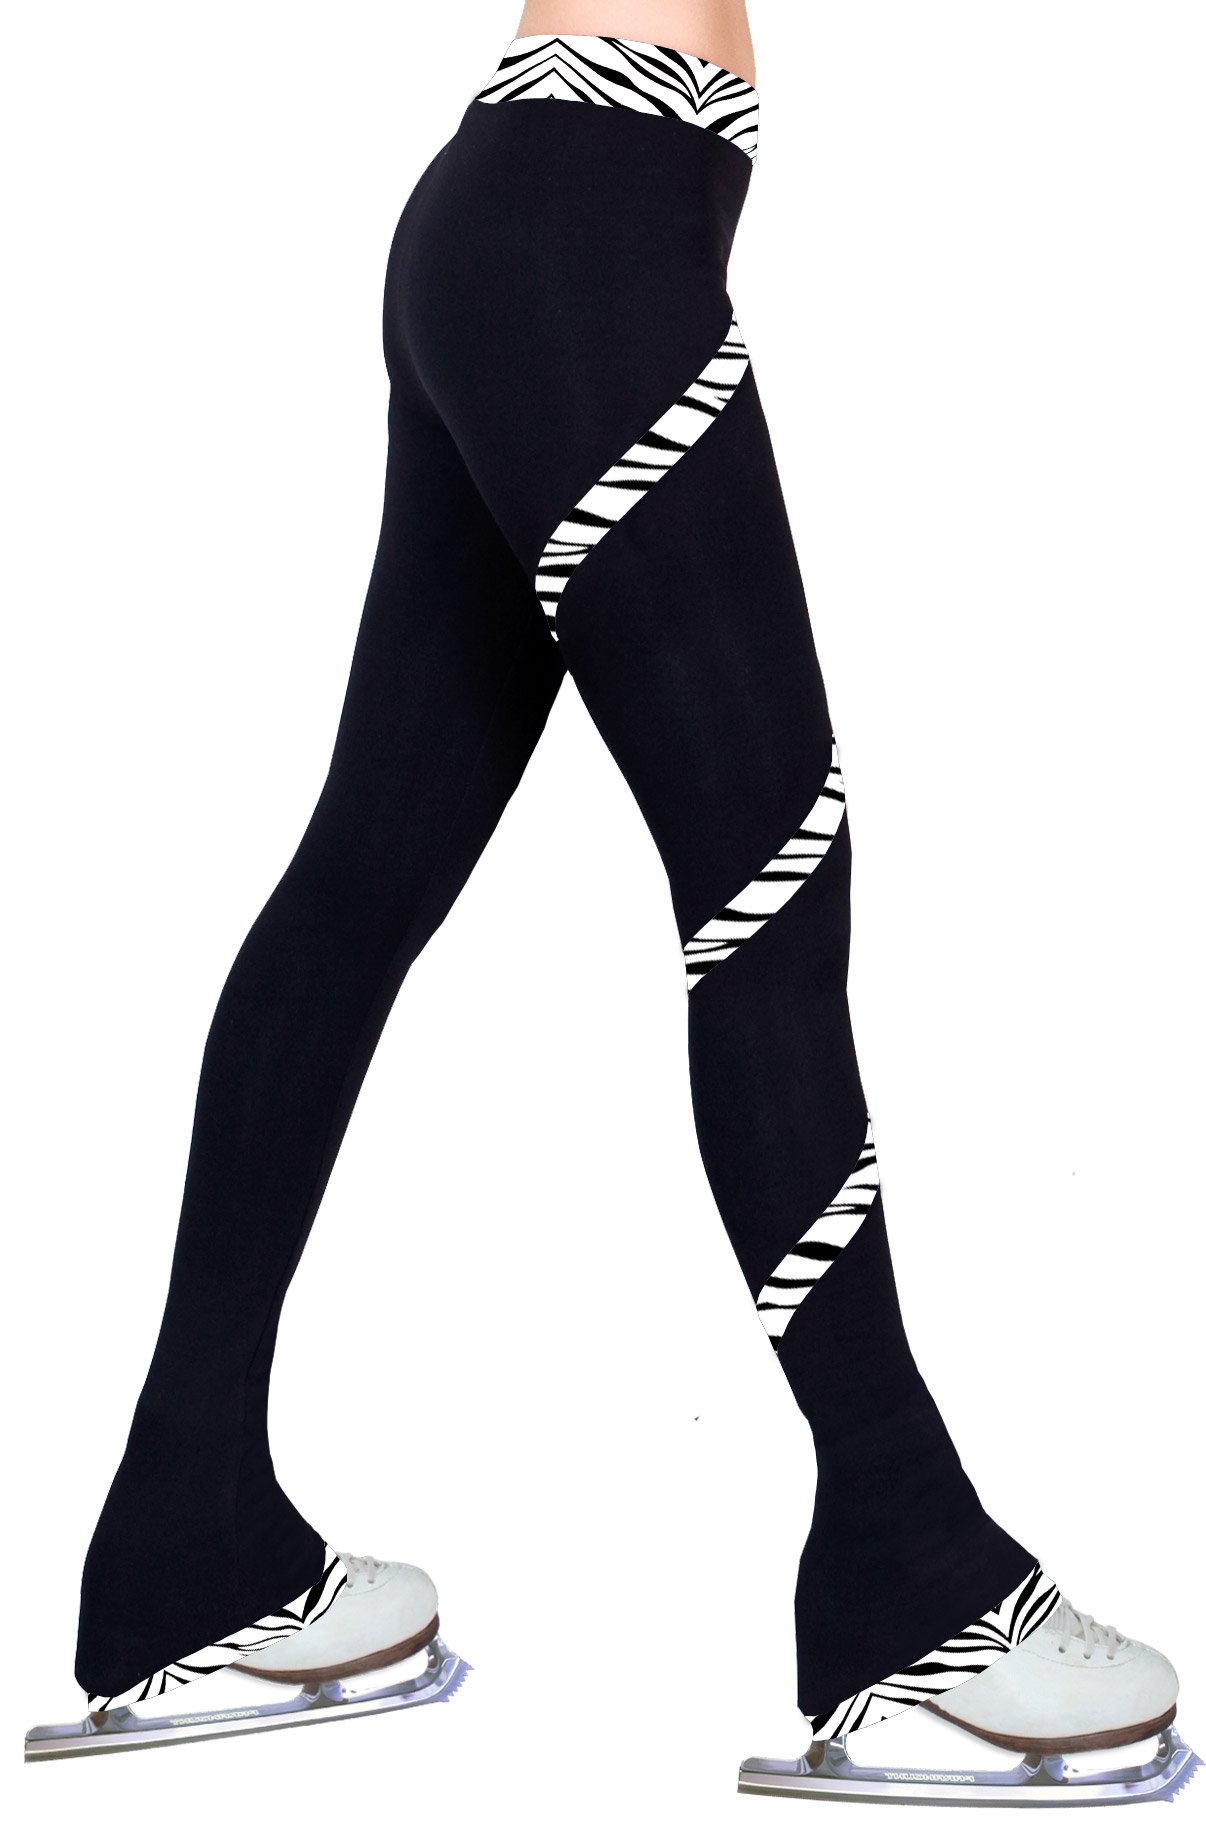 ny2 Sportswear Figure Skating Spiral Polartec Polar Fleece Pants (Zebra White, Adult Medium) by ny2 Sportswear